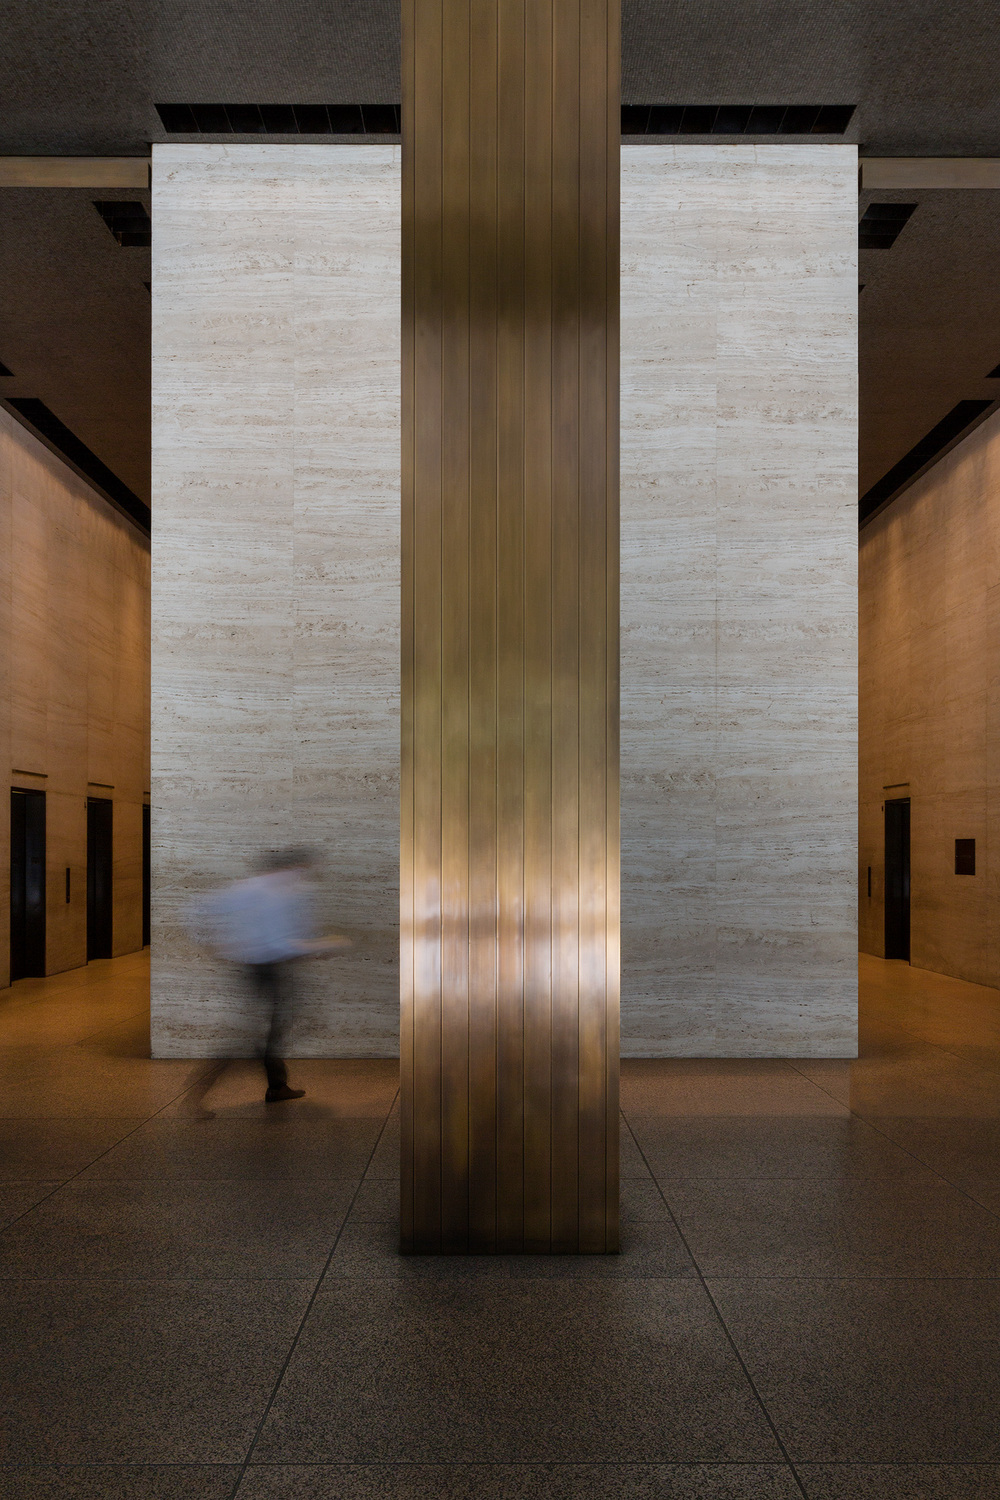 Seagram Building / New York NY / Mies van der Rohe